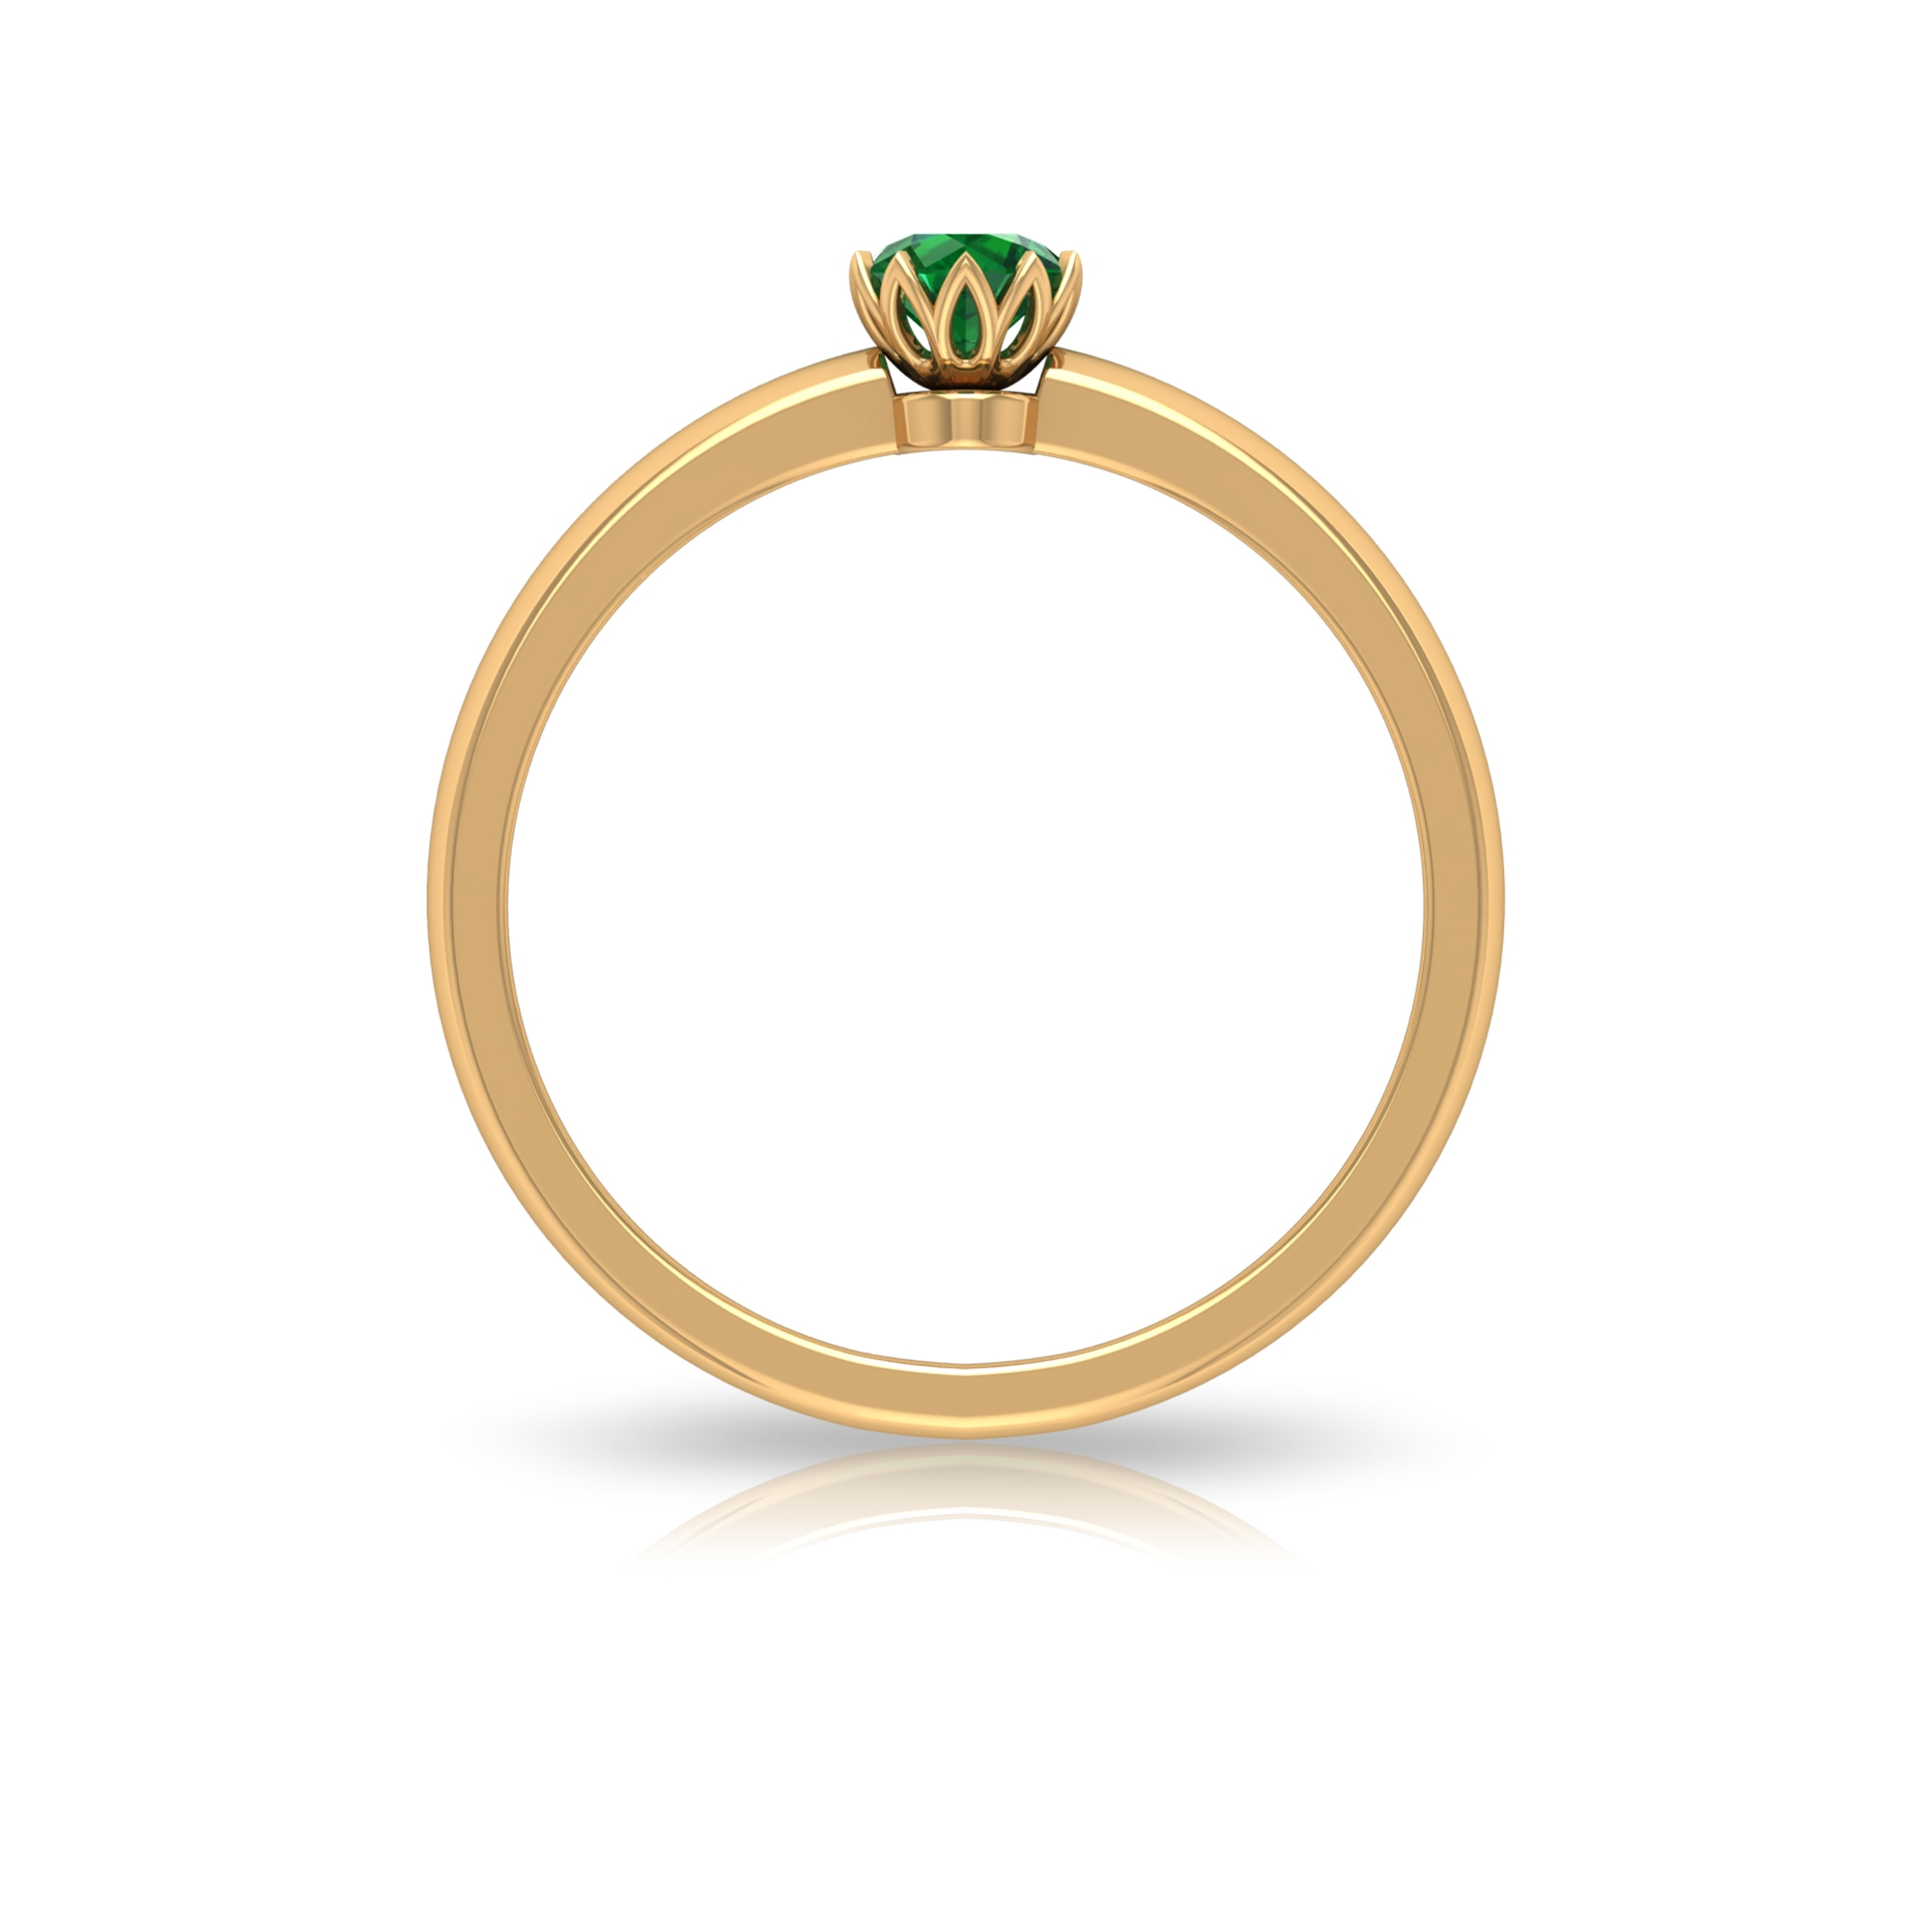 4 MM Round Cut Emerald Solitaire Ring in Lotus Basket Setting